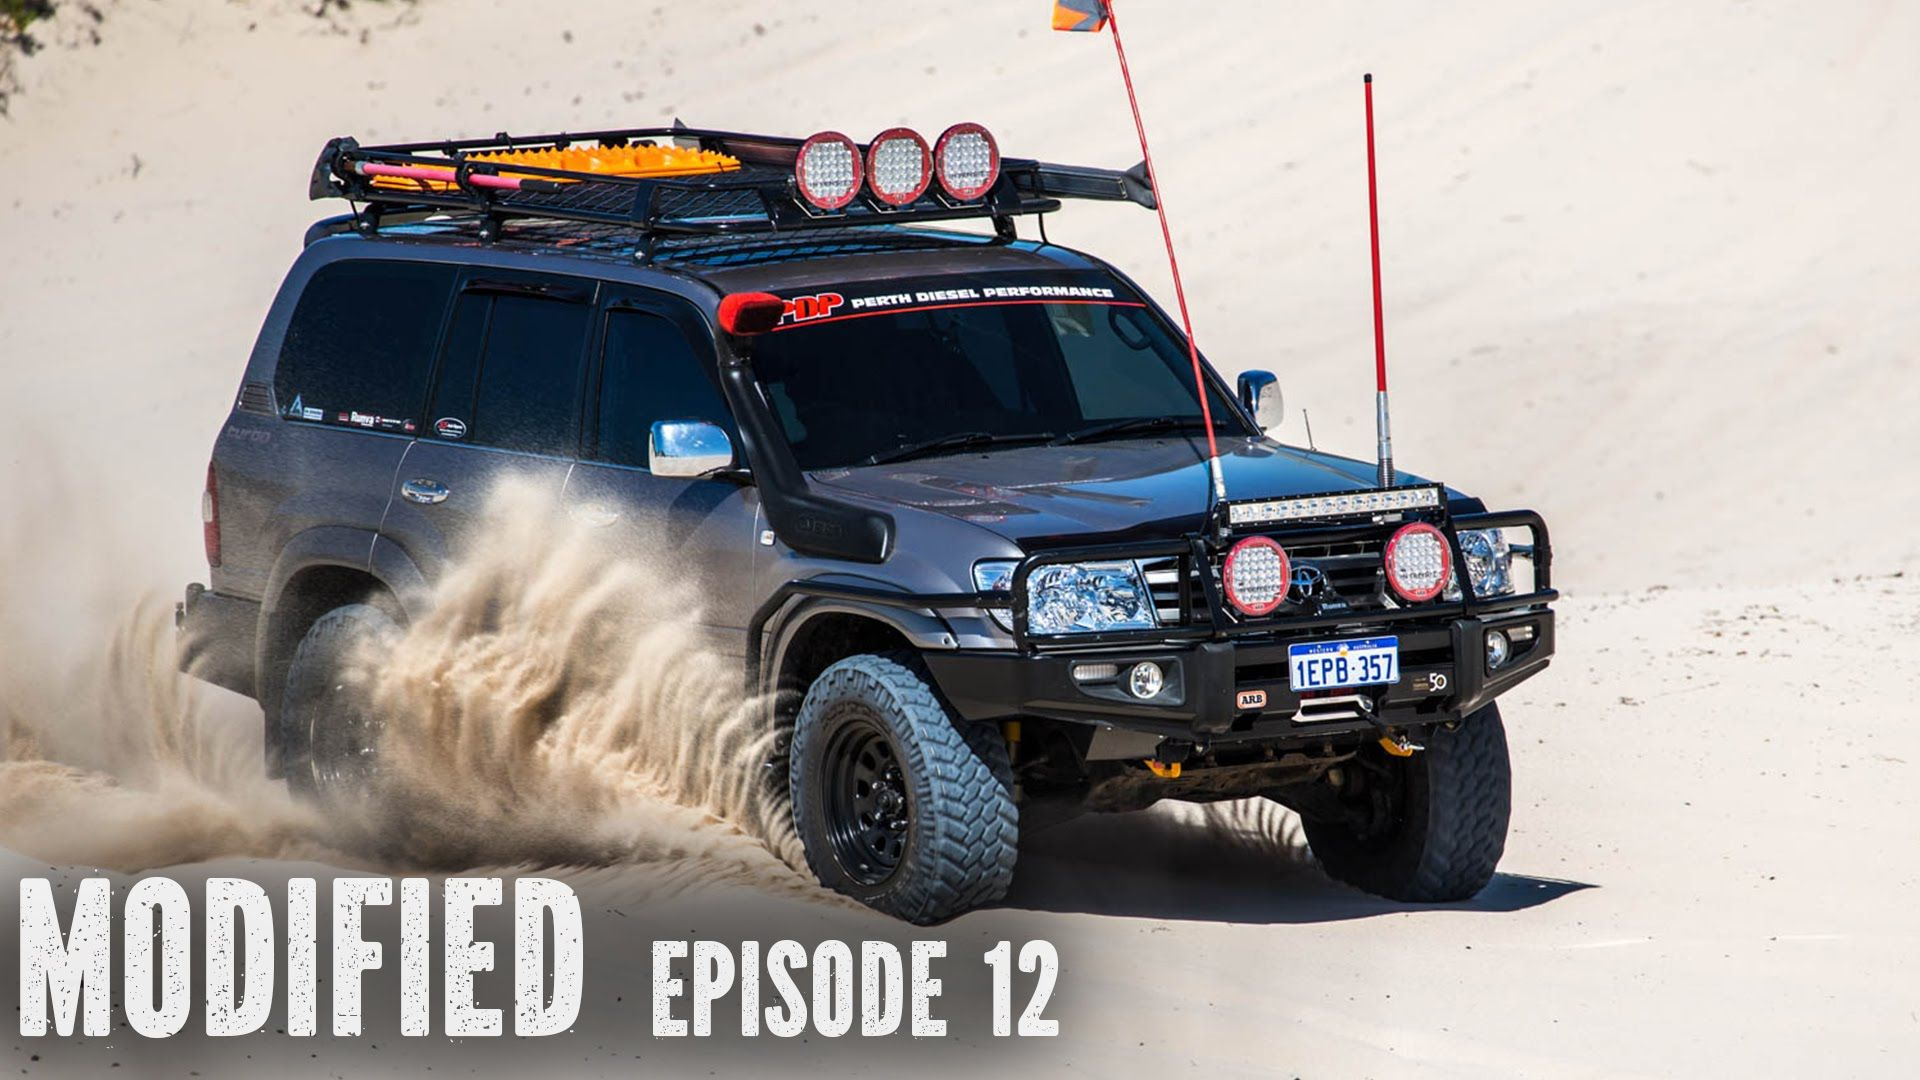 Modified 100 Series Landcruiser Modified Episode 12 Land Cruiser 100 Series Landcruiser Toyota Land Cruiser 100